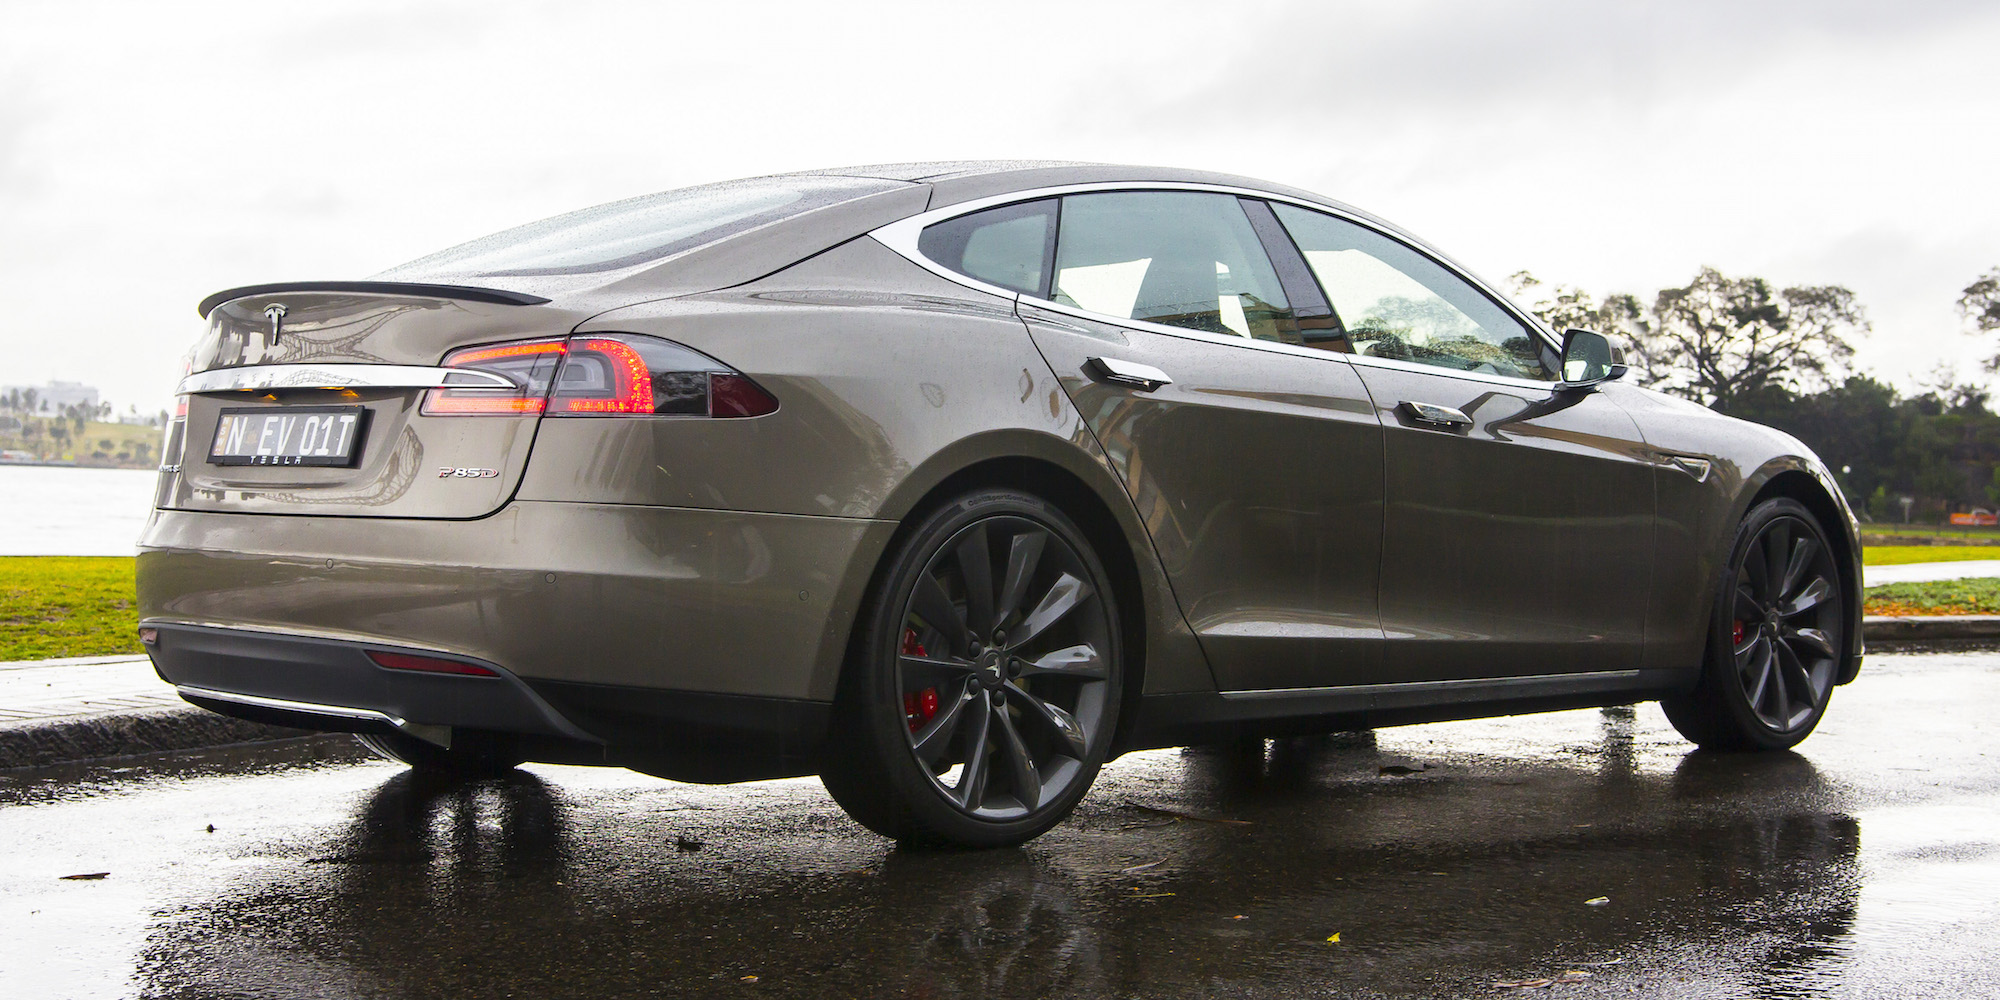 2015 Tesla Model S P85d Rear And Side Body (View 34 of 37)